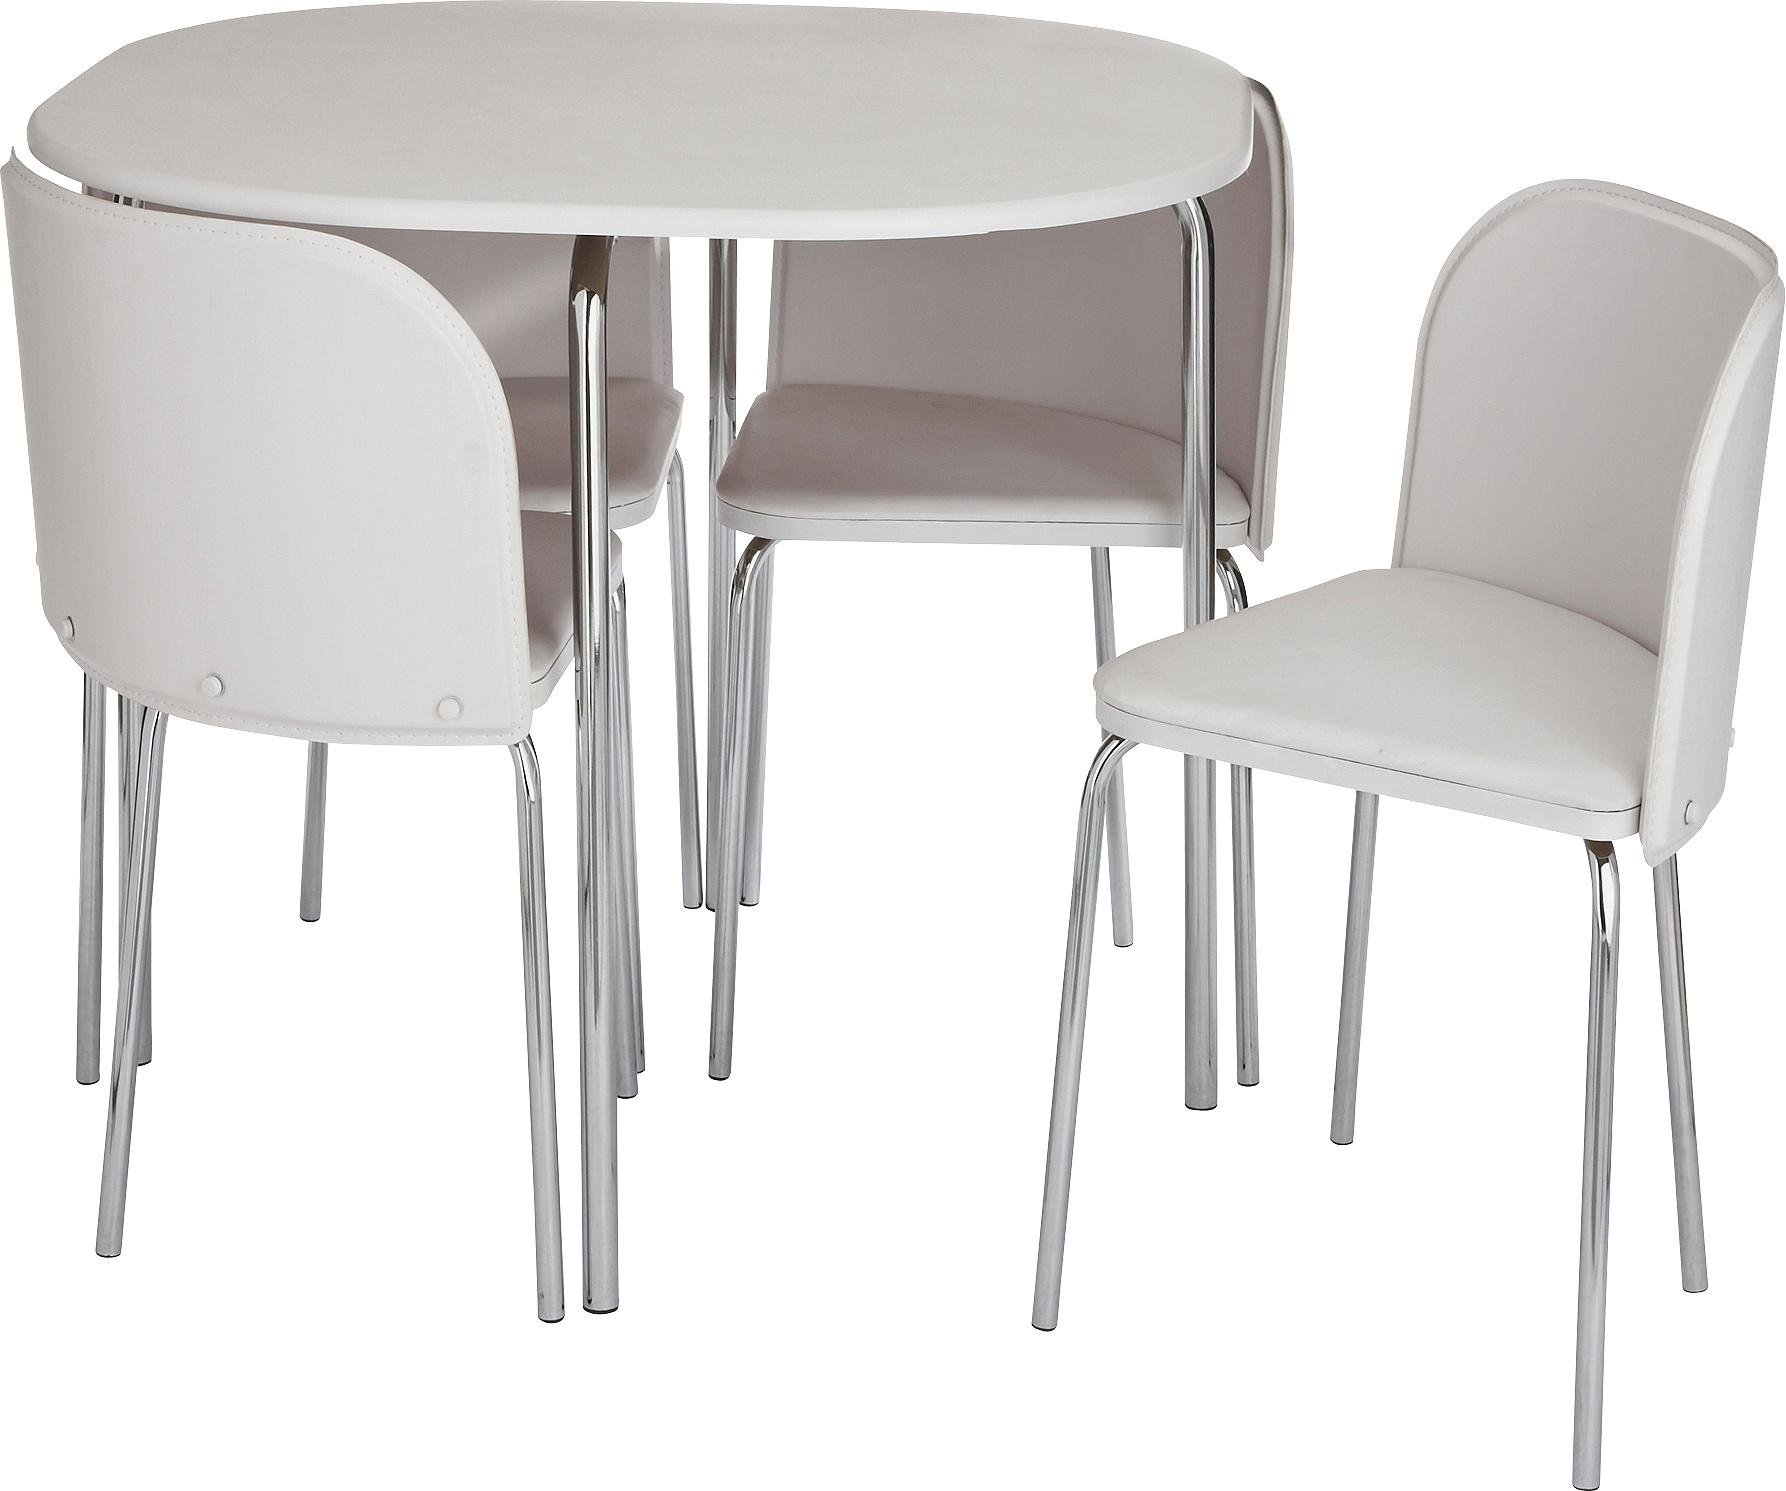 Argos Table And Chairs In Sale: SALE On Argos Home Amparo White Dining Table & 4 White